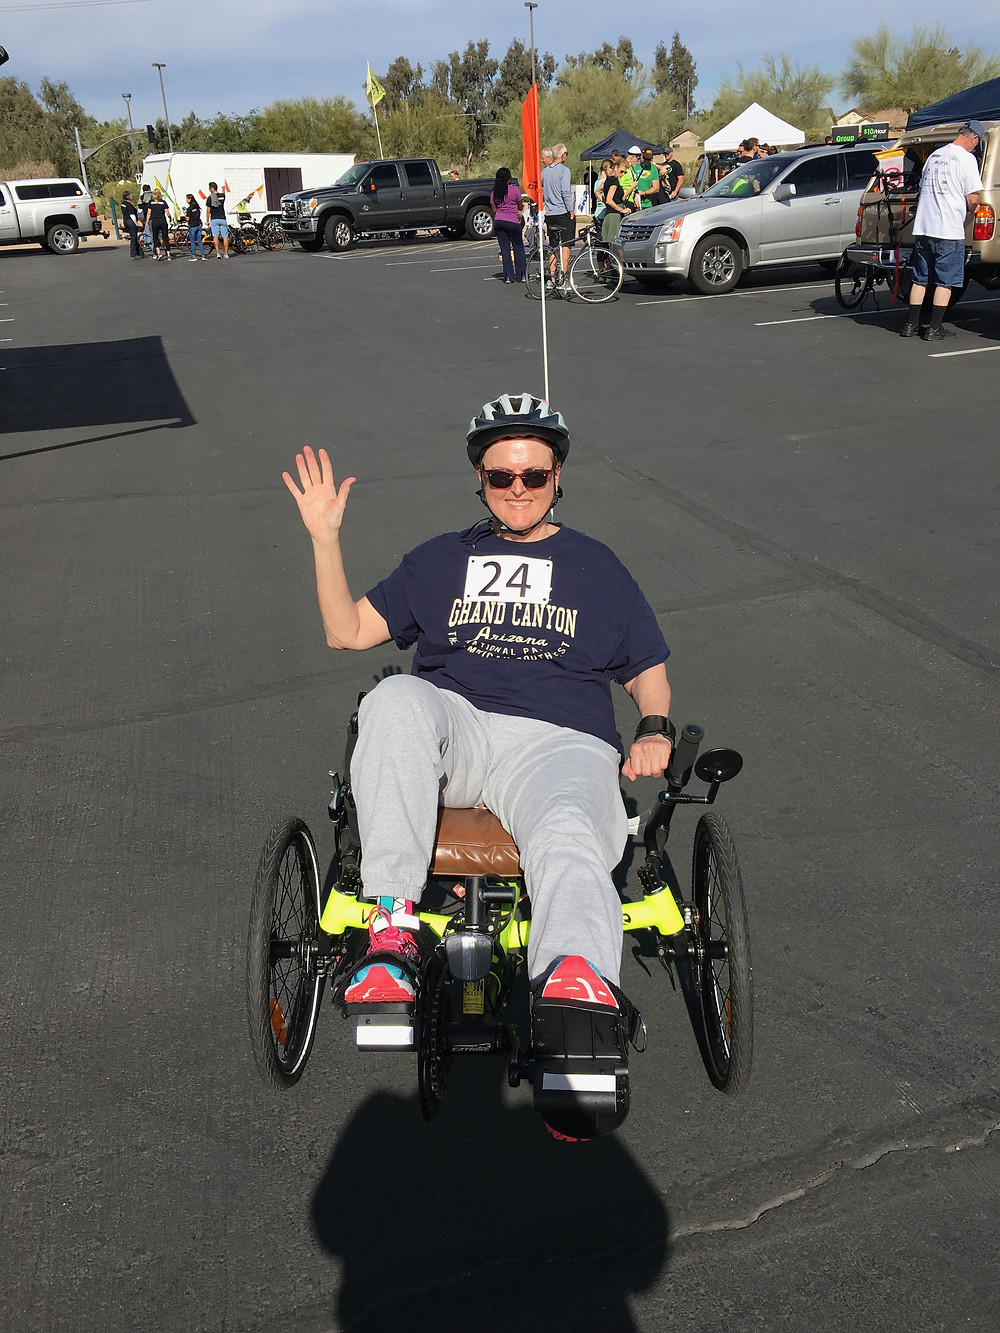 Here I am at the Recumbent Tryke Event in 2017!